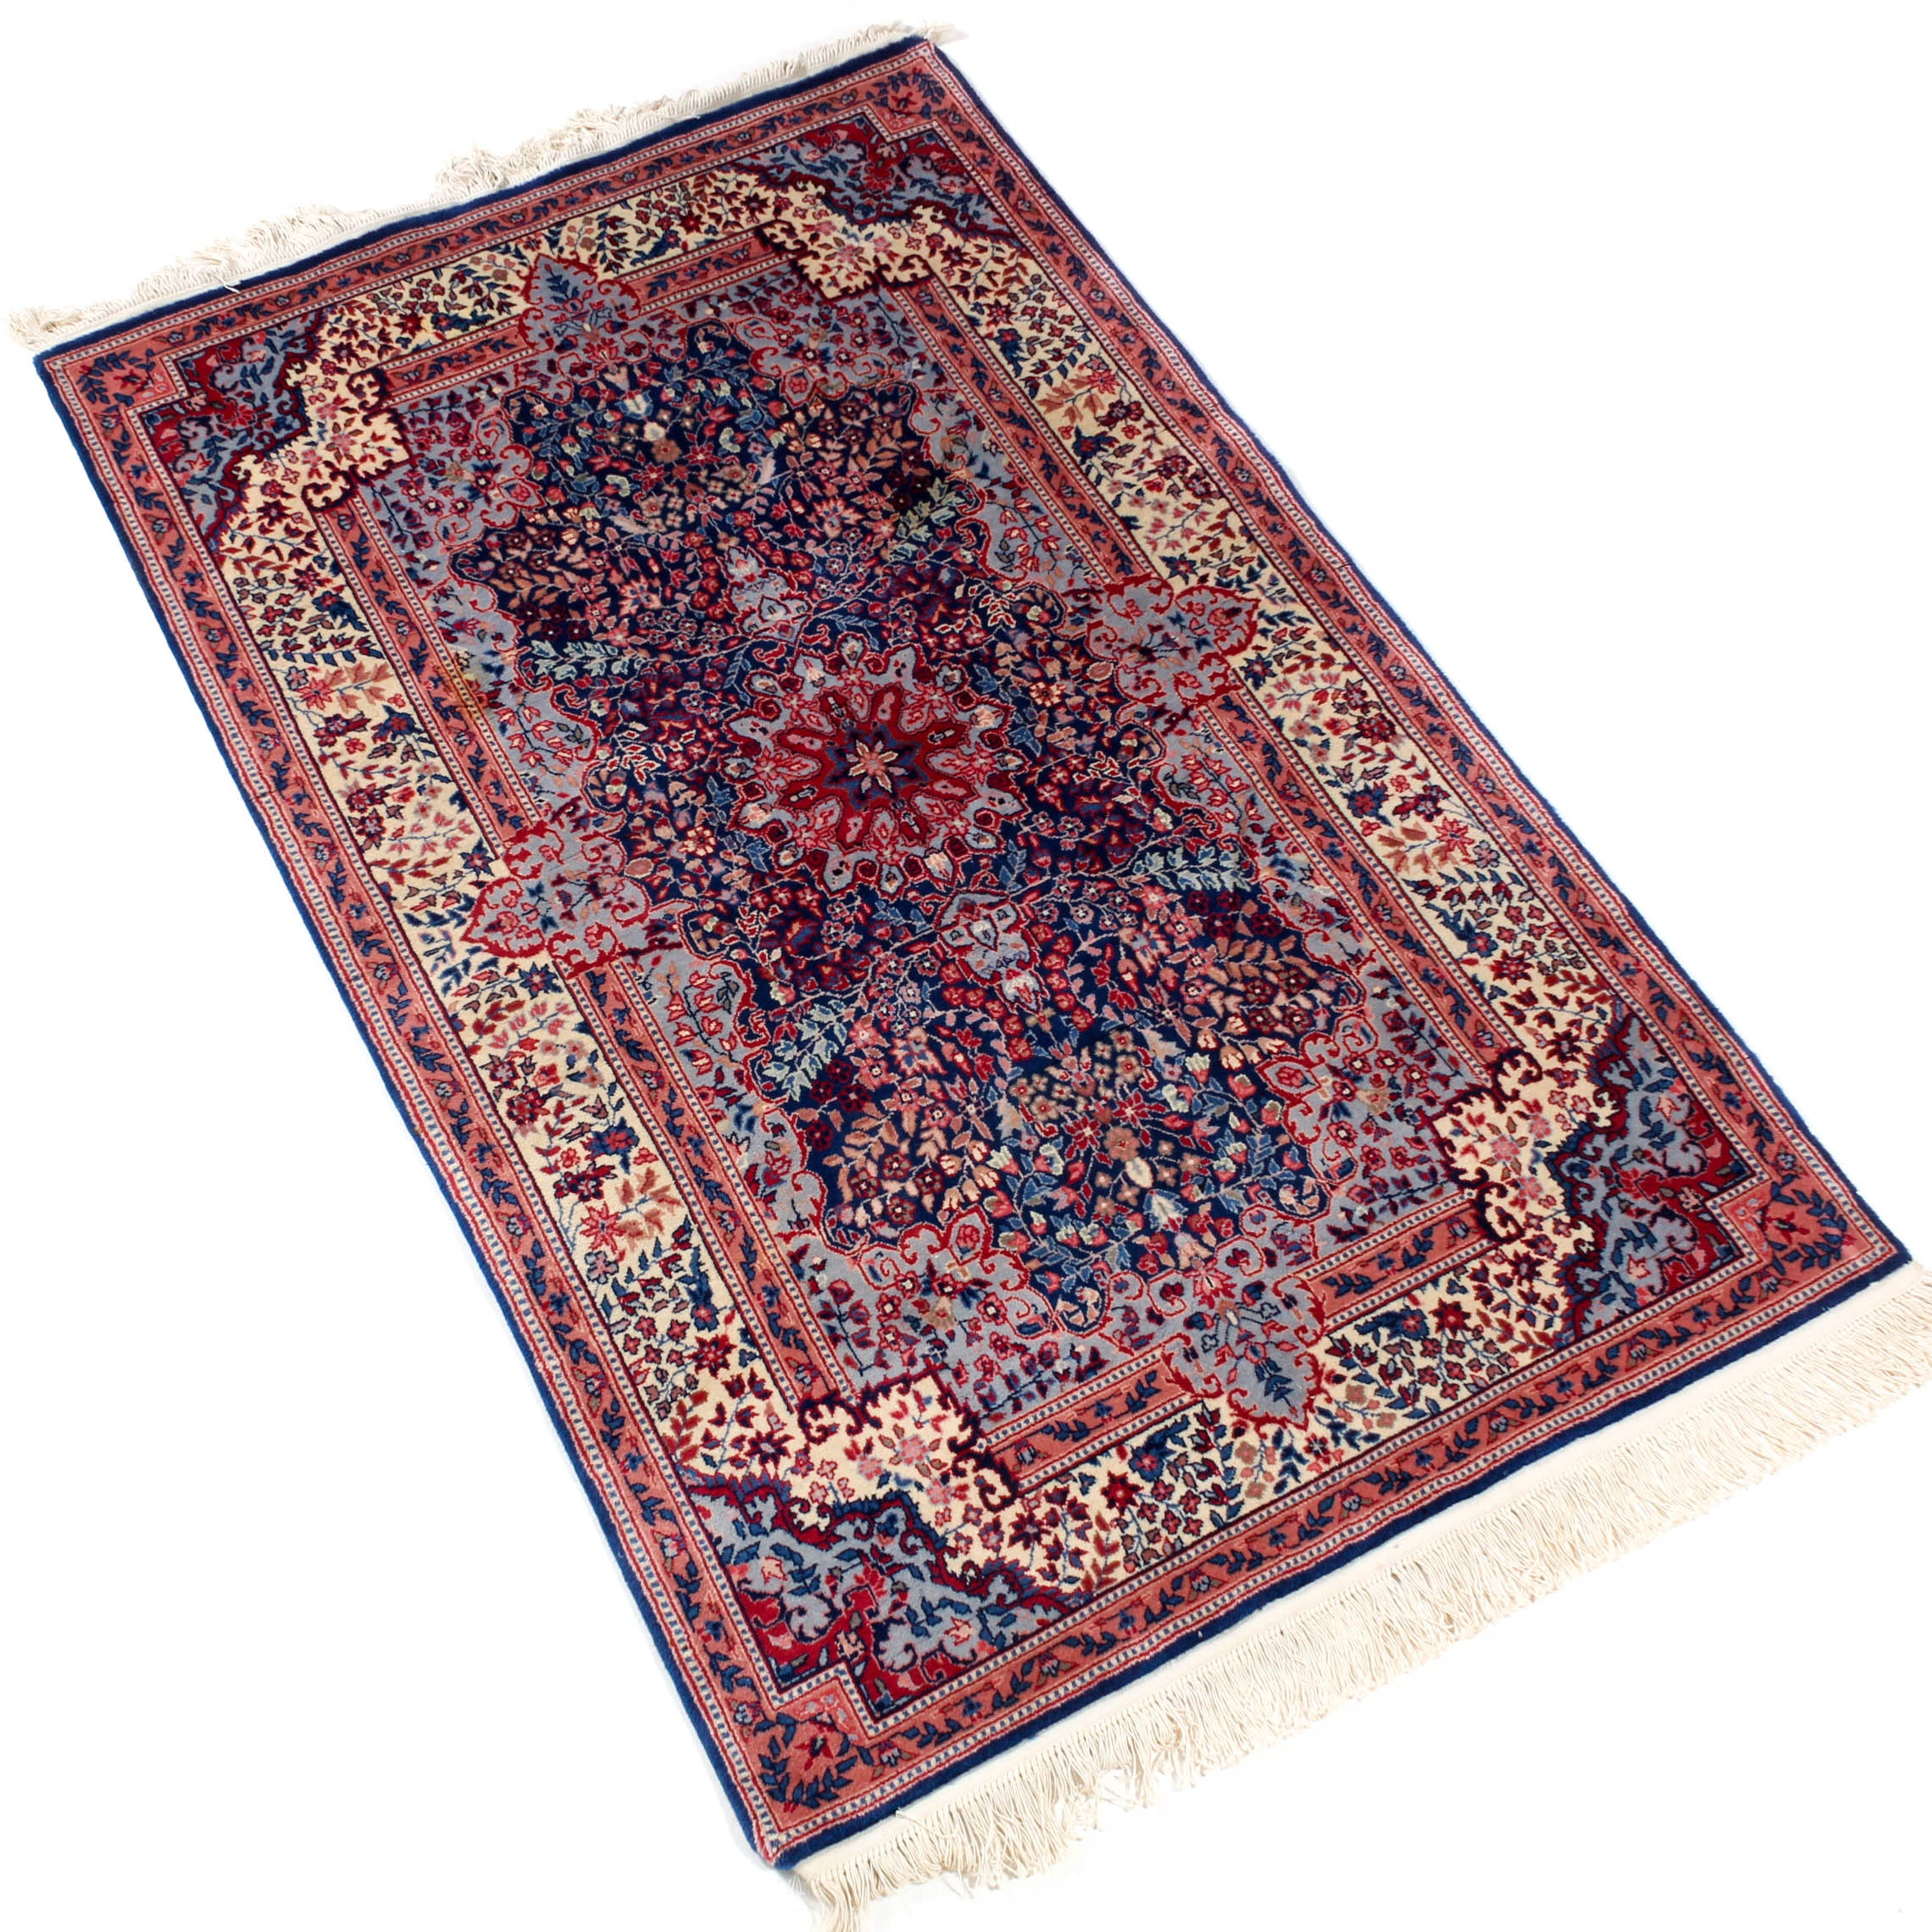 4' x 6.9' Hand-Knotted Persian Rug